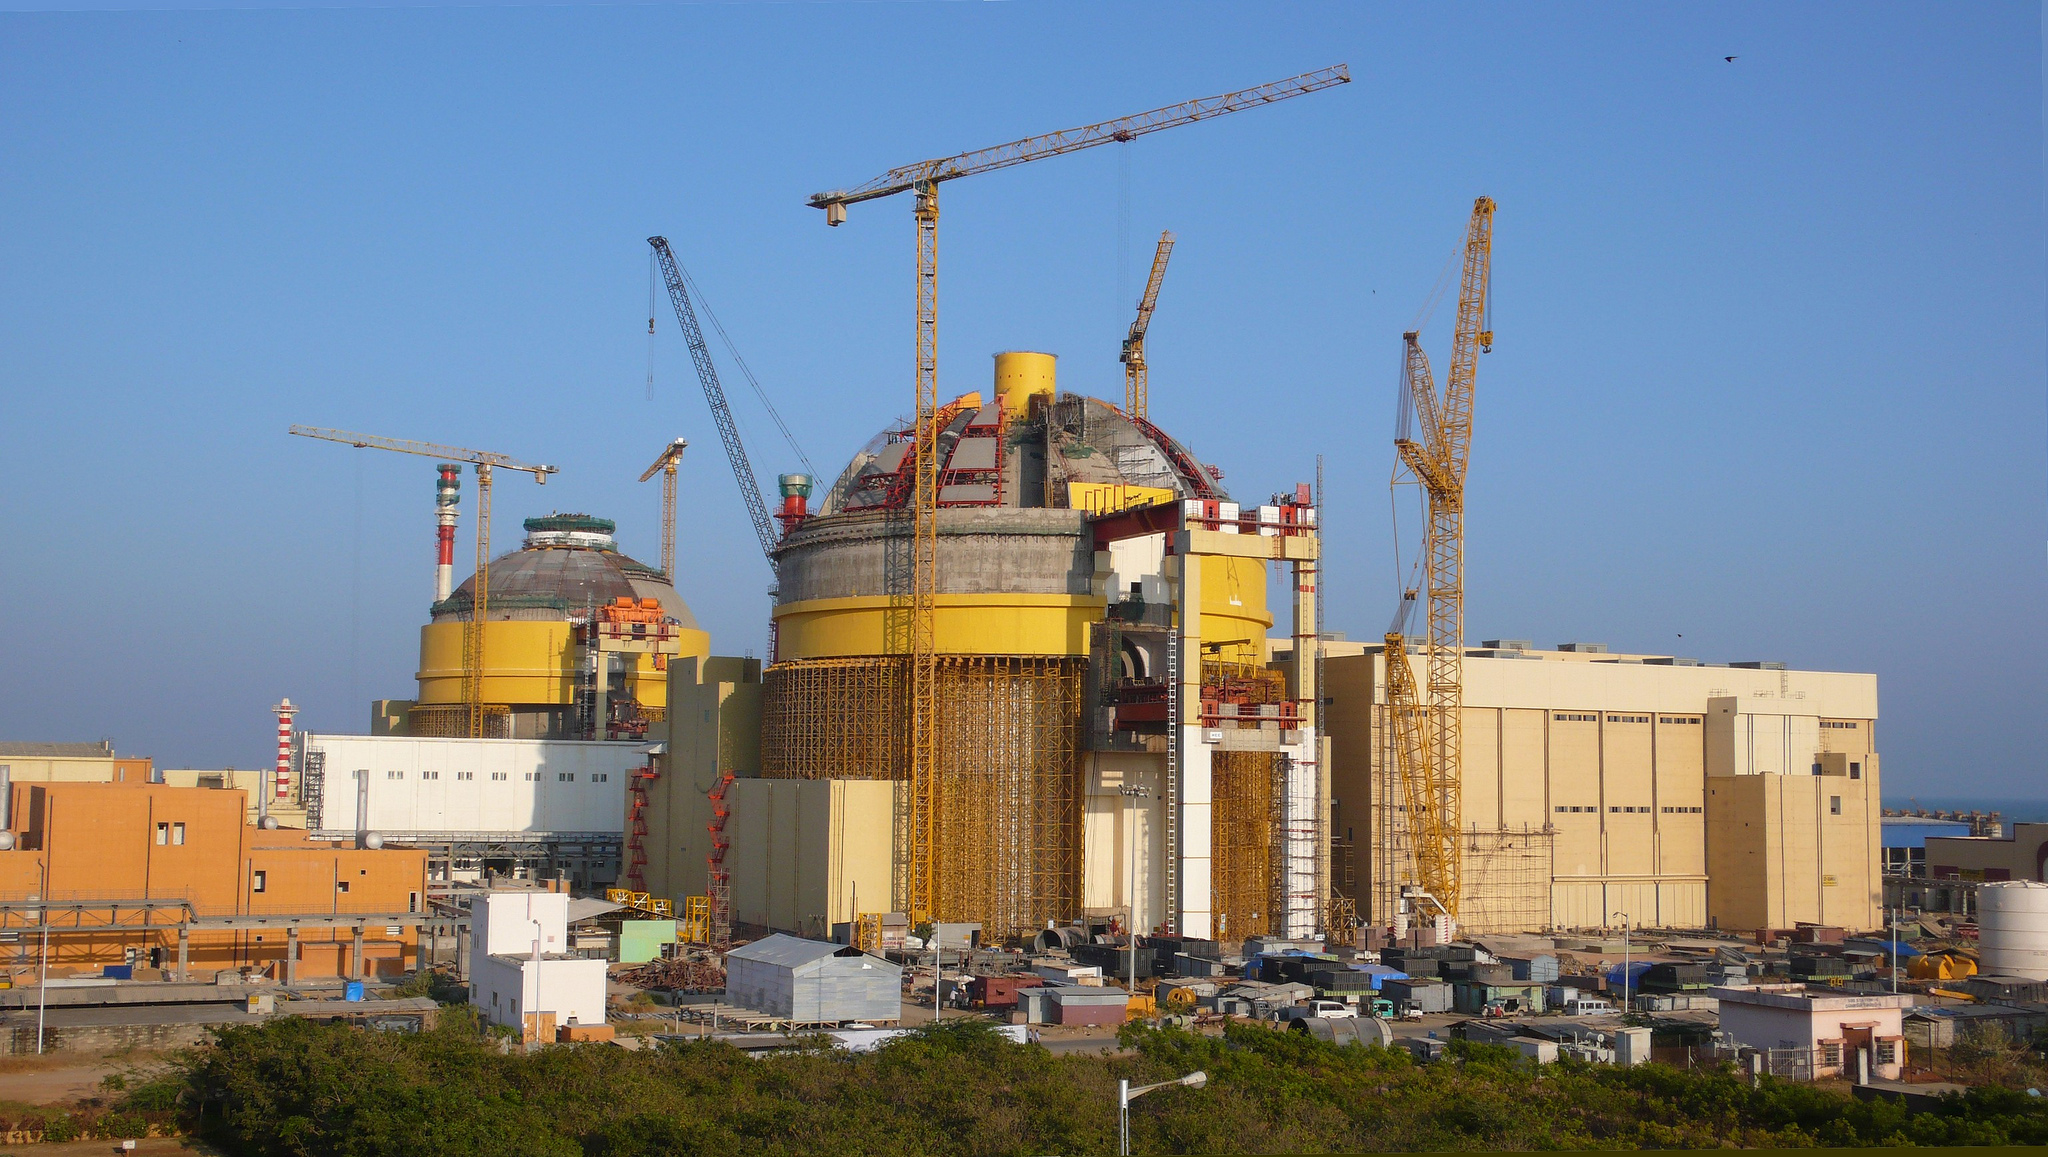 English: Construction site of the Koodankulam Nuclear Power Plant Deutsch: Baustelle des Kernkraftwerks Kudankulam (Photo credit: Wikipedia)